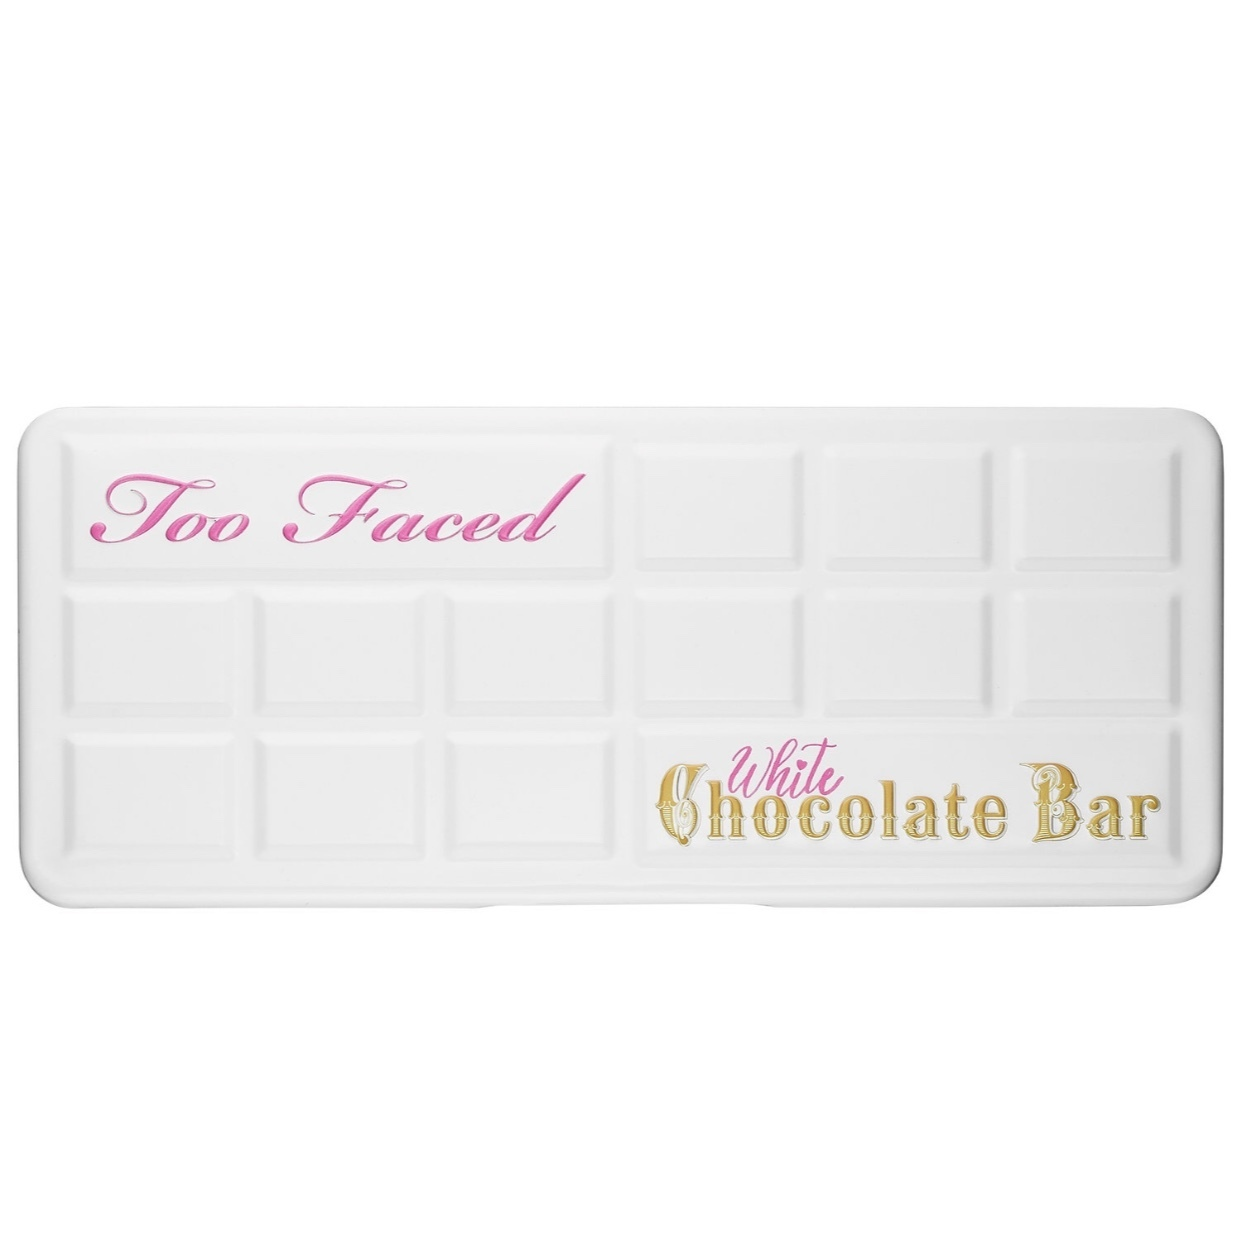 Too faced☆アイシャドウ☆大人気☆NEW White Chocolate Bar☆